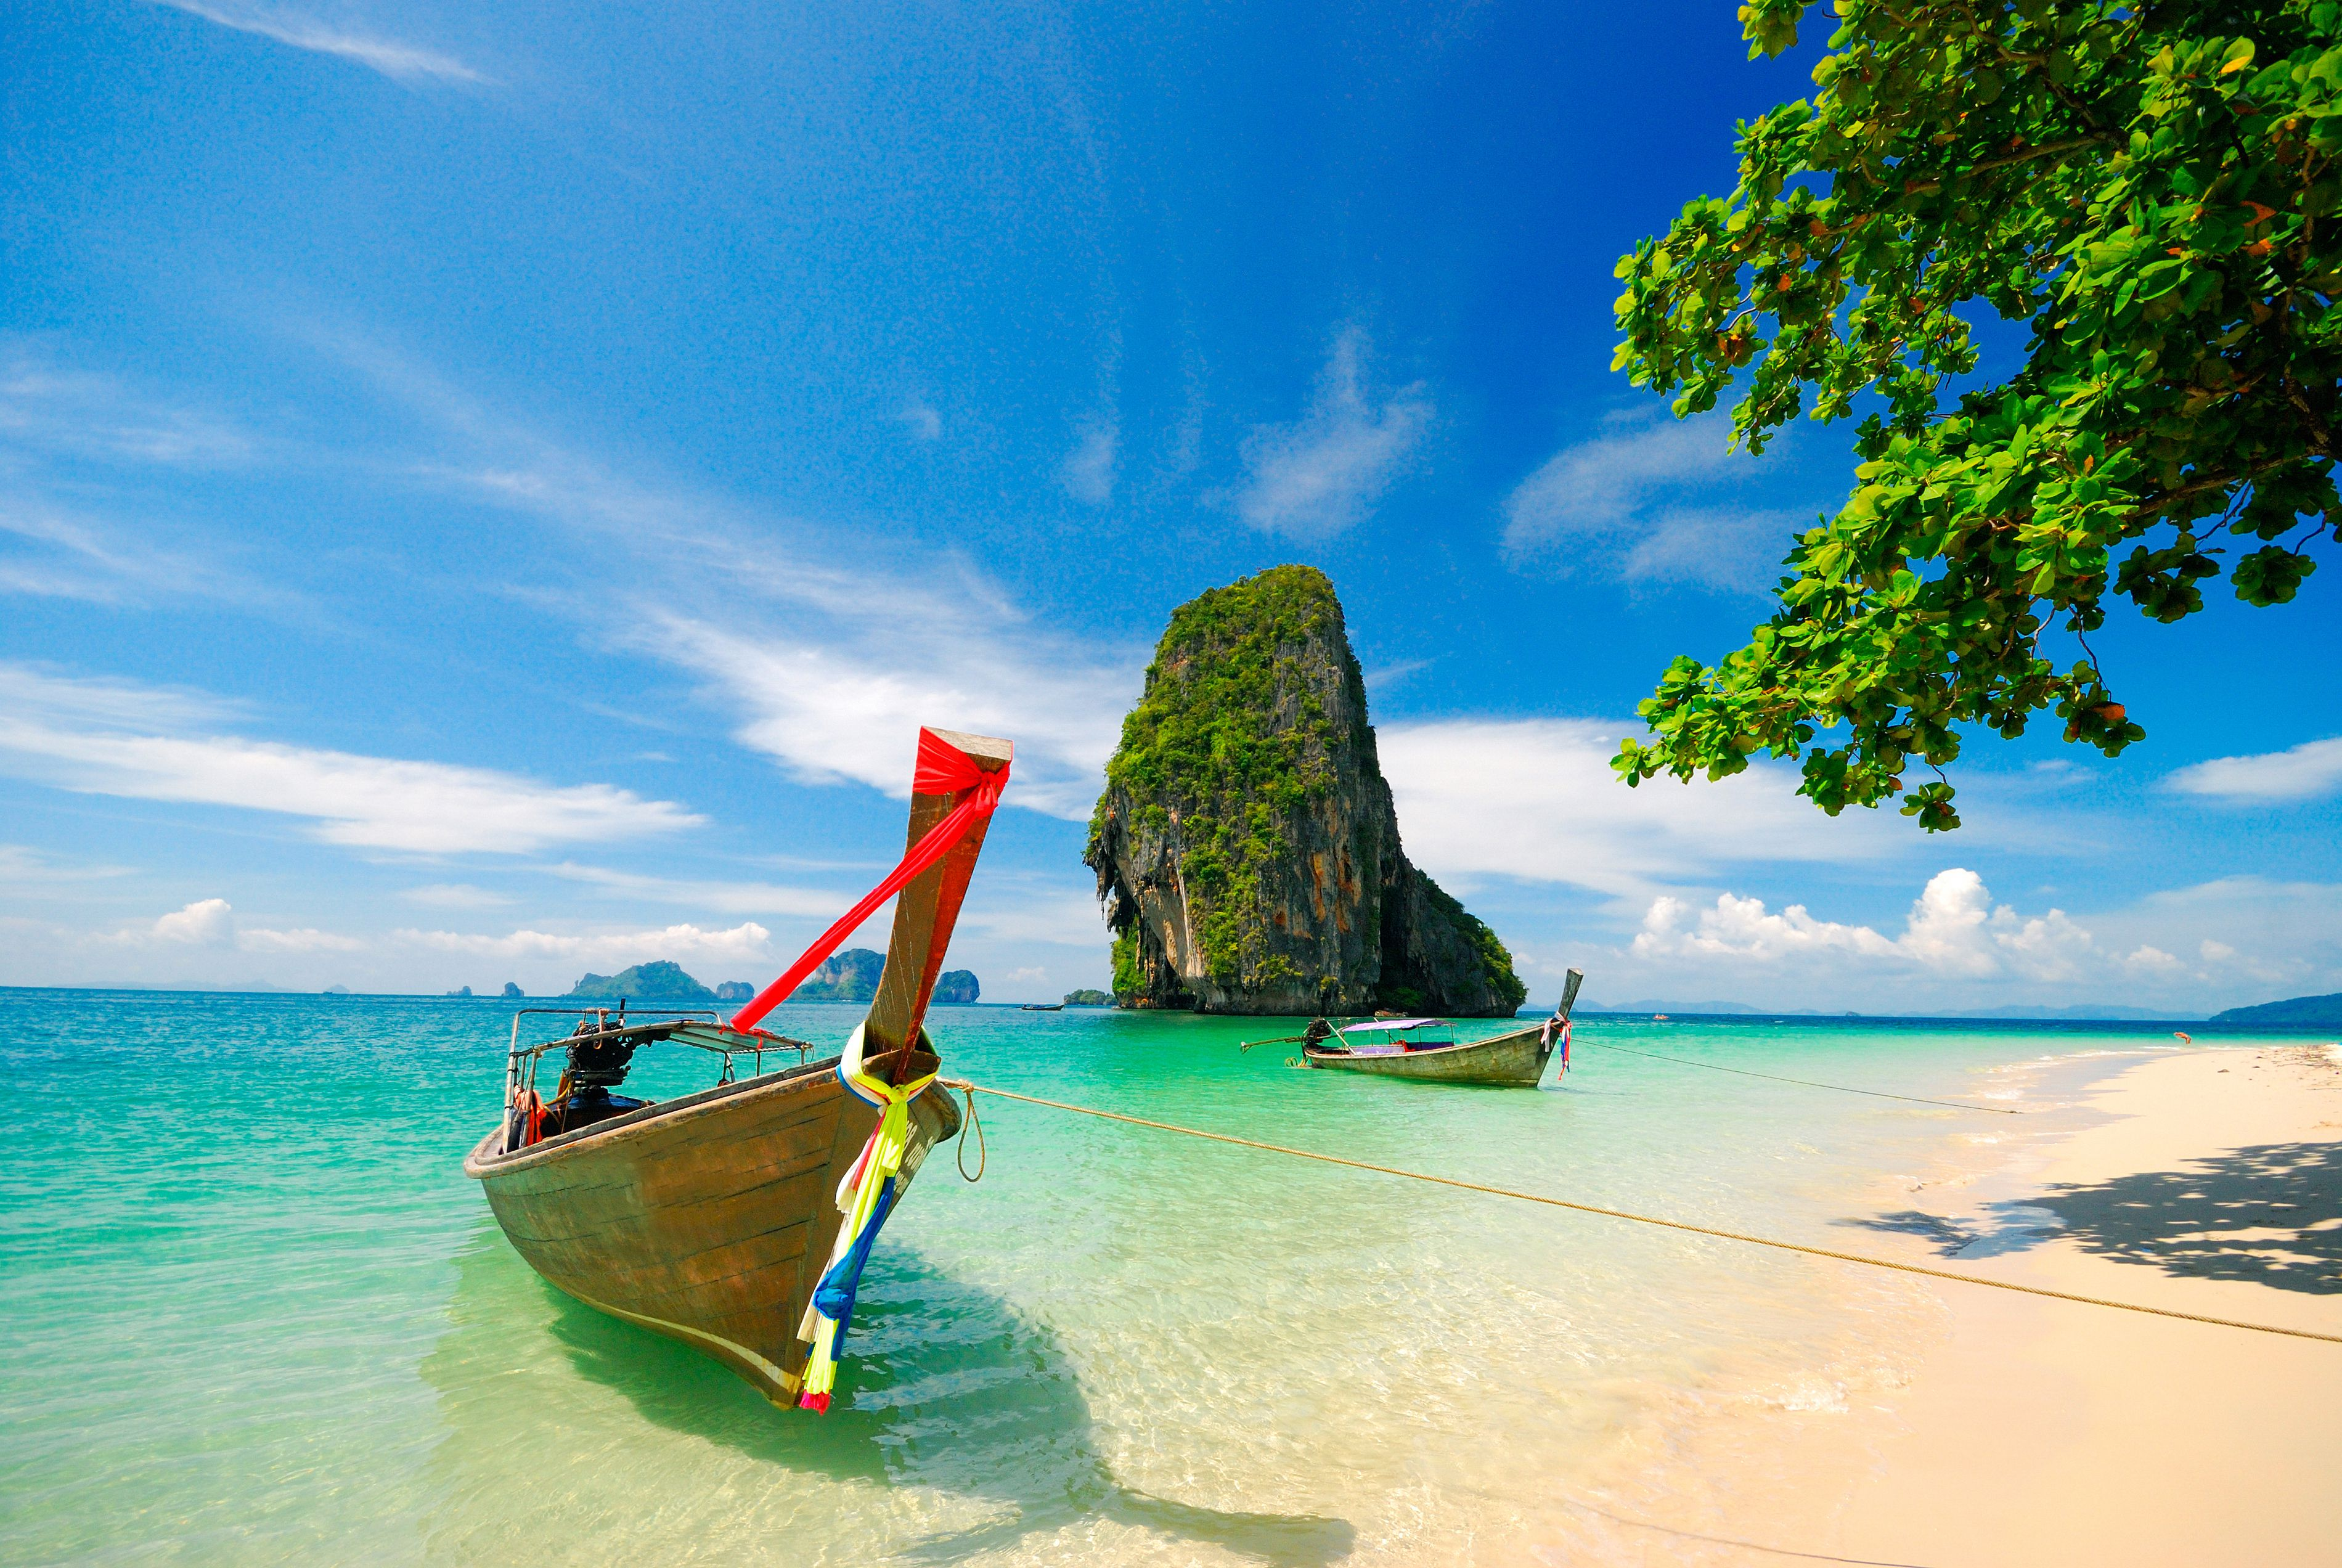 Thailand, Krabi, with boats on shore